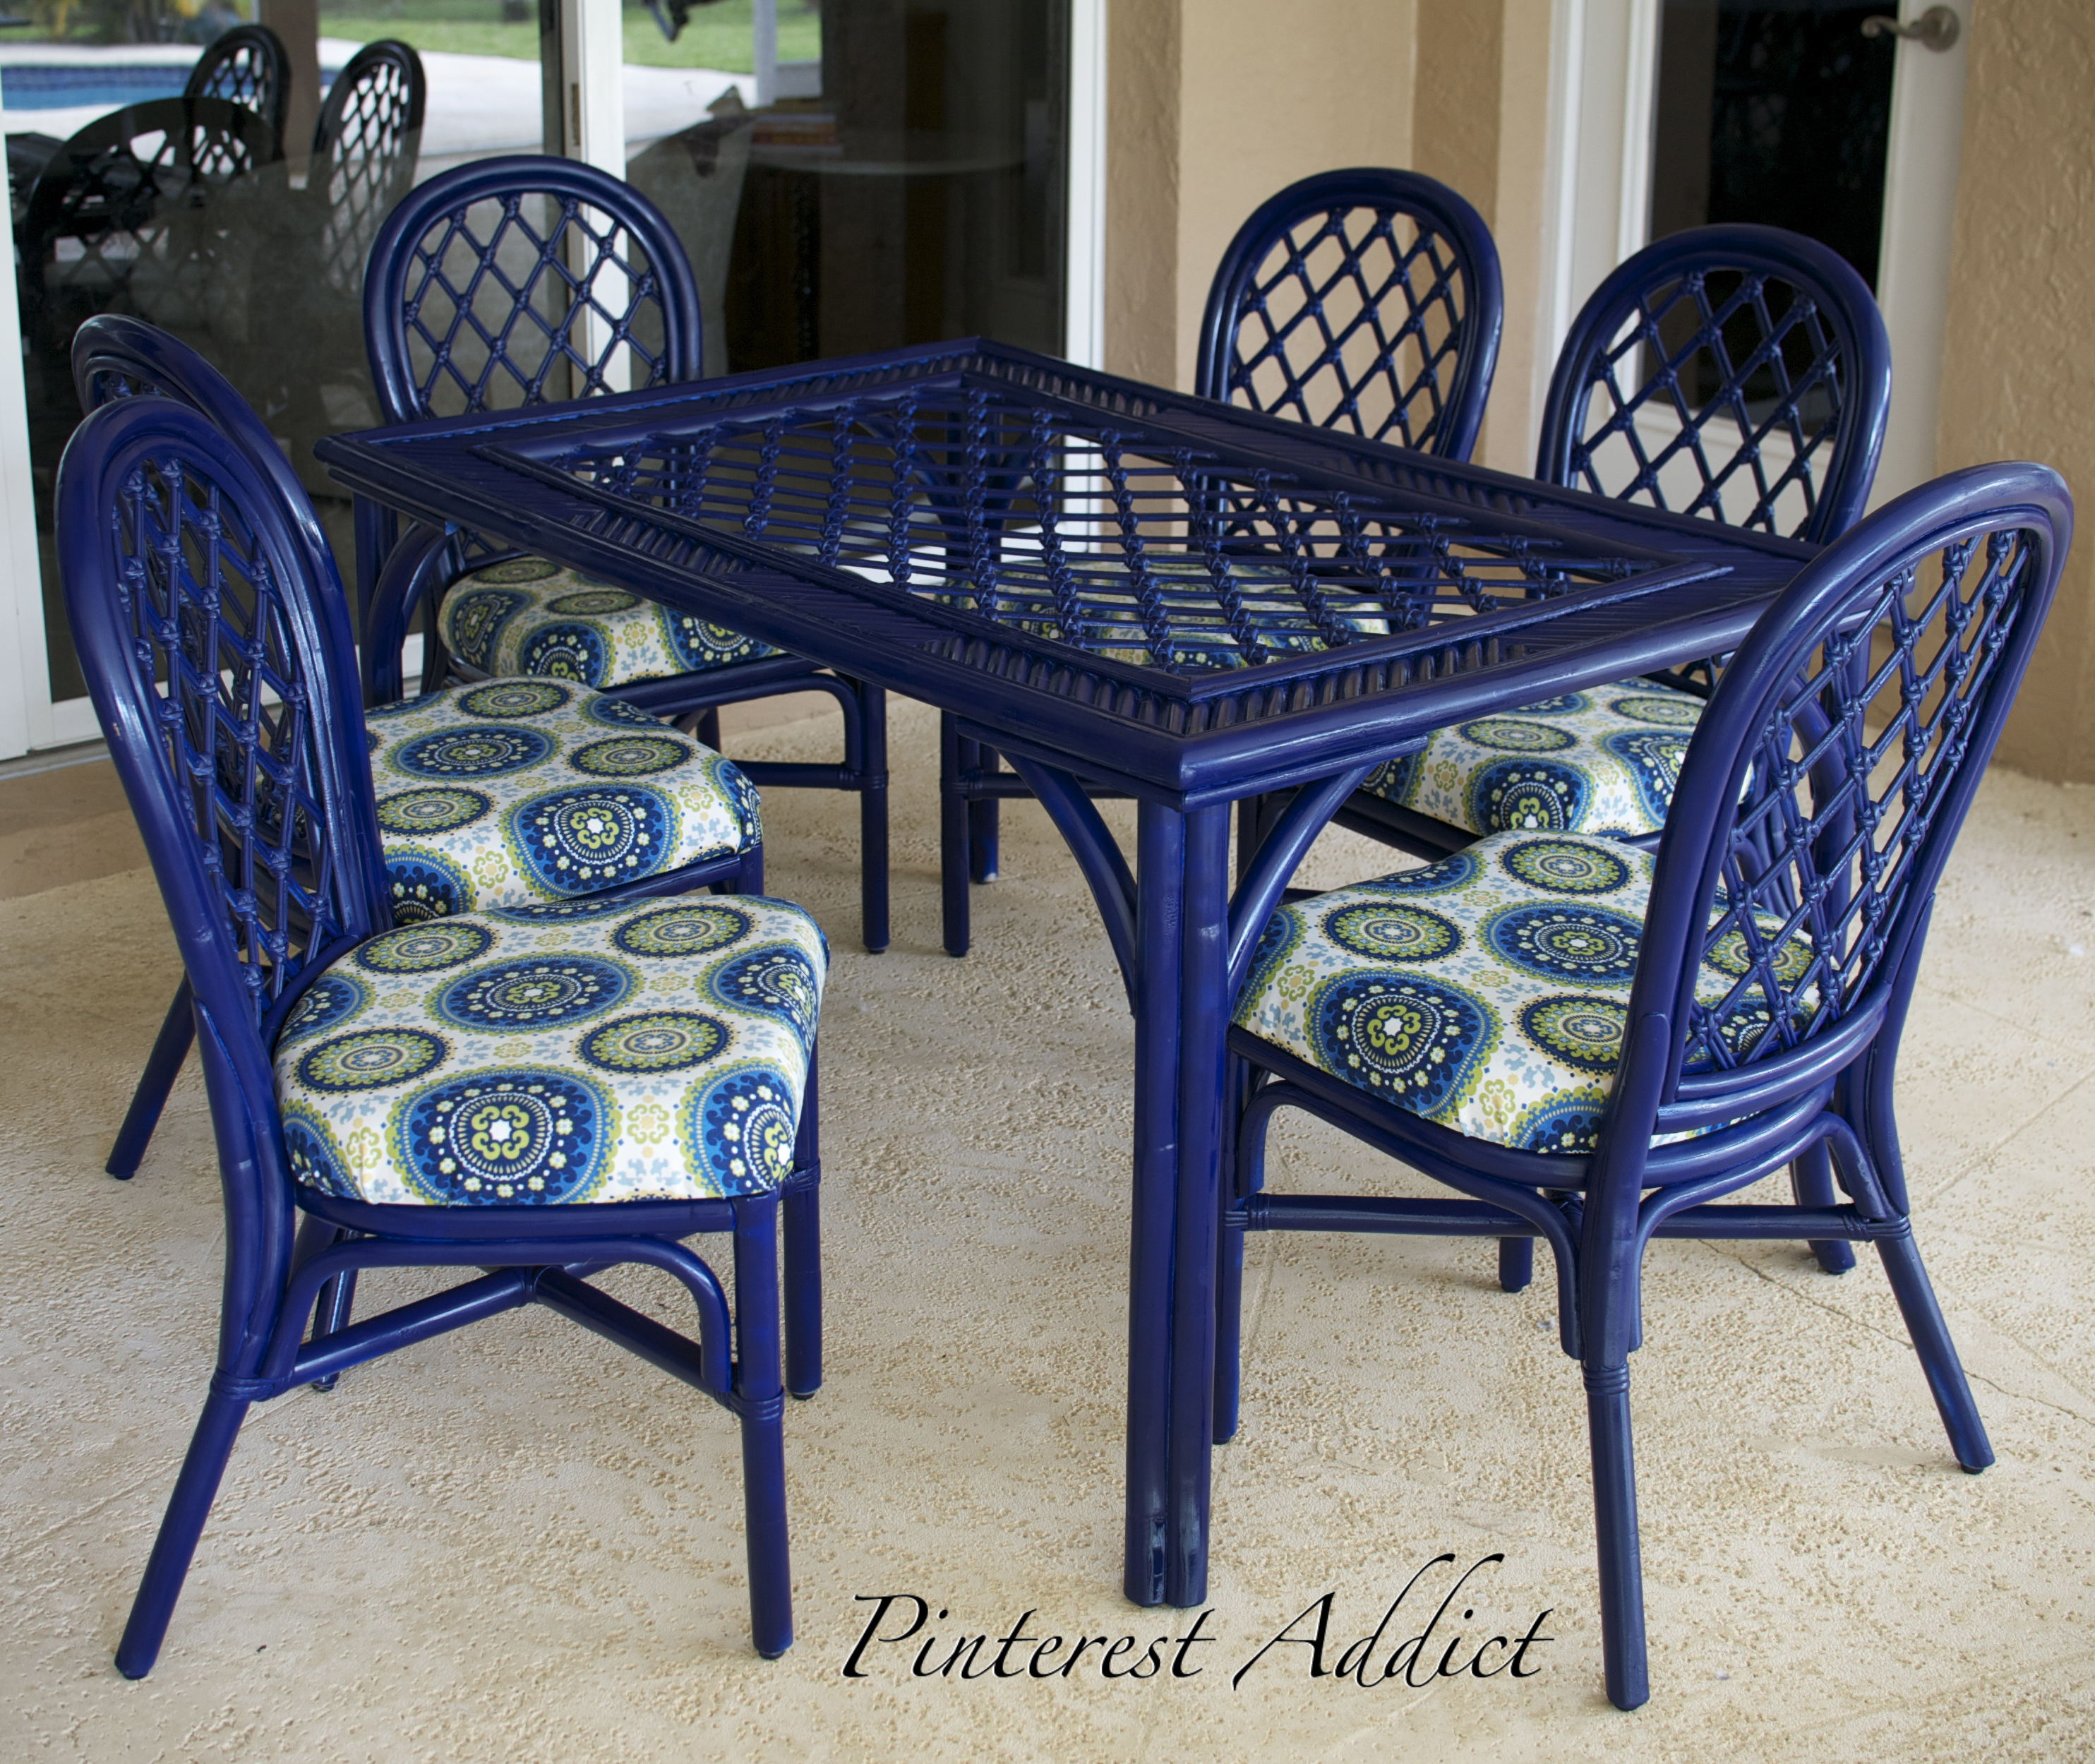 Creative 11 Spray Paint Patio Chairs Image